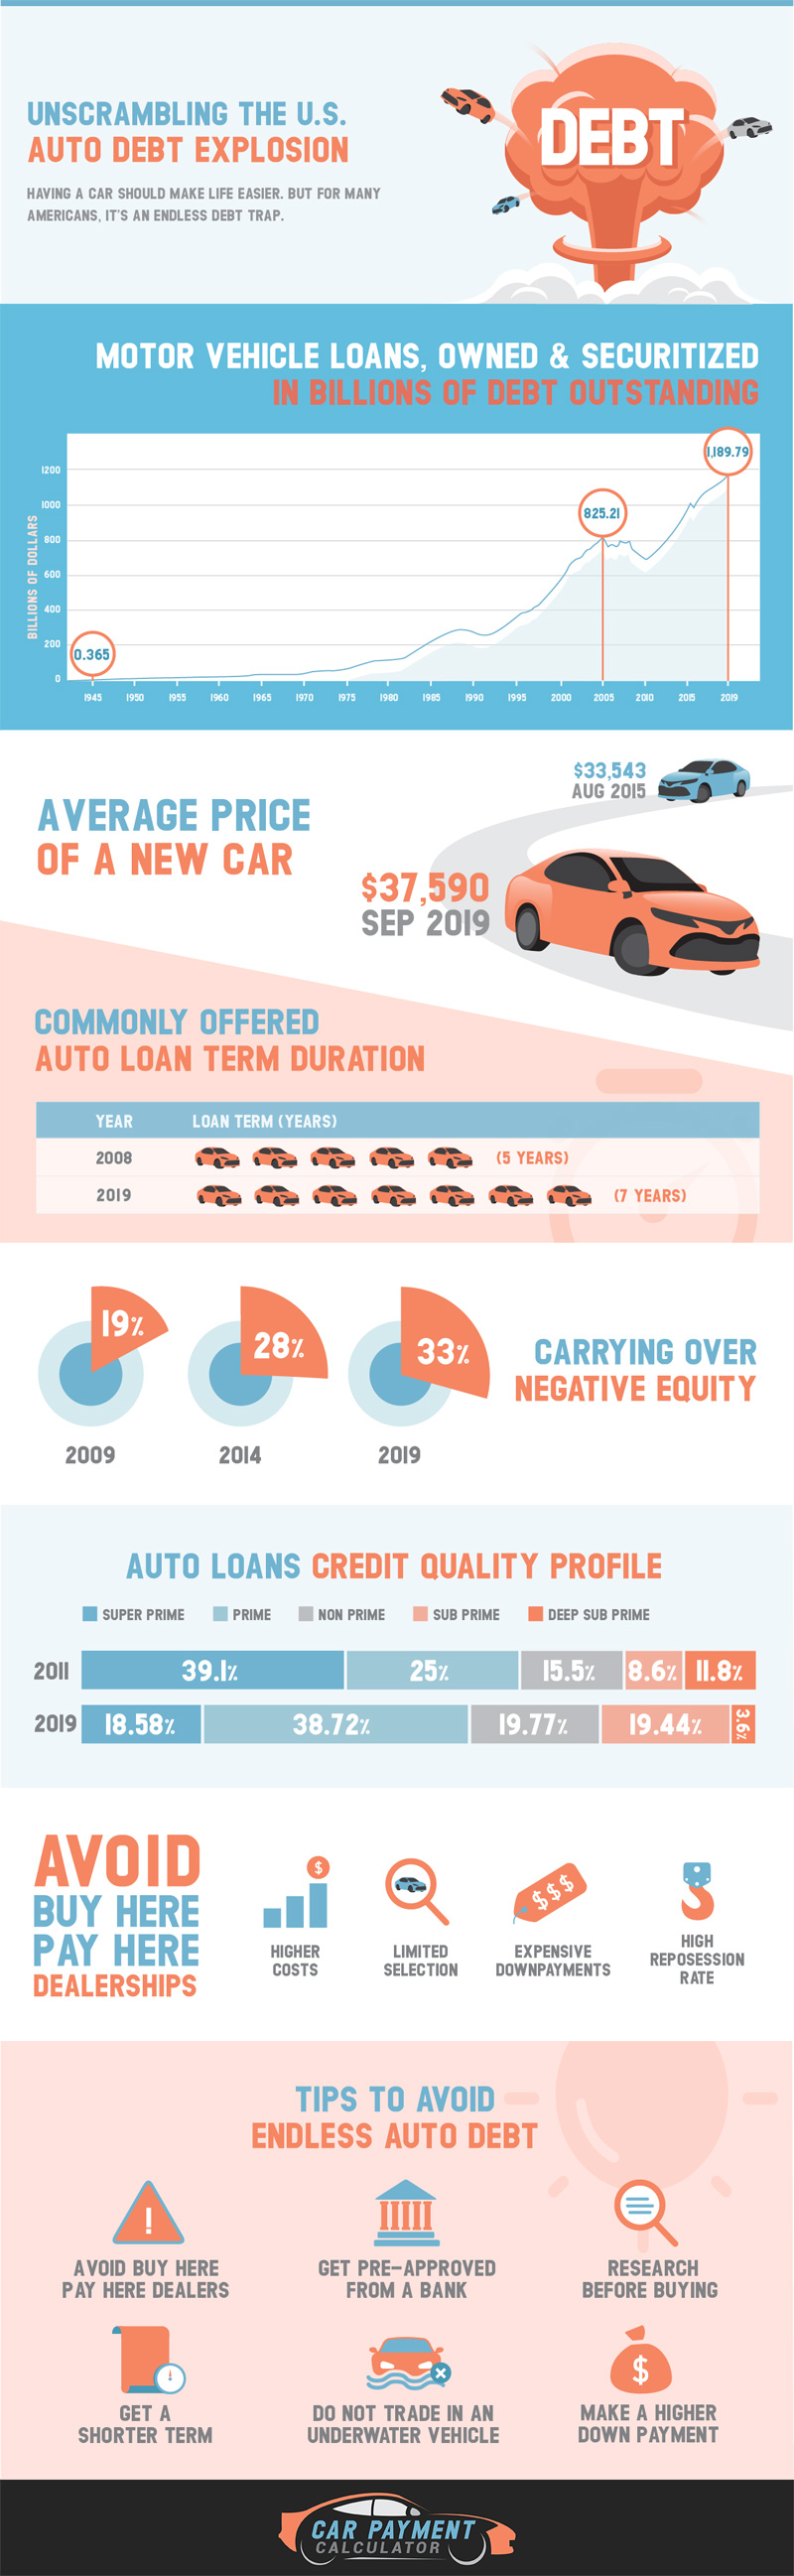 Unscrambling the U.S. Auto Debt Explosion